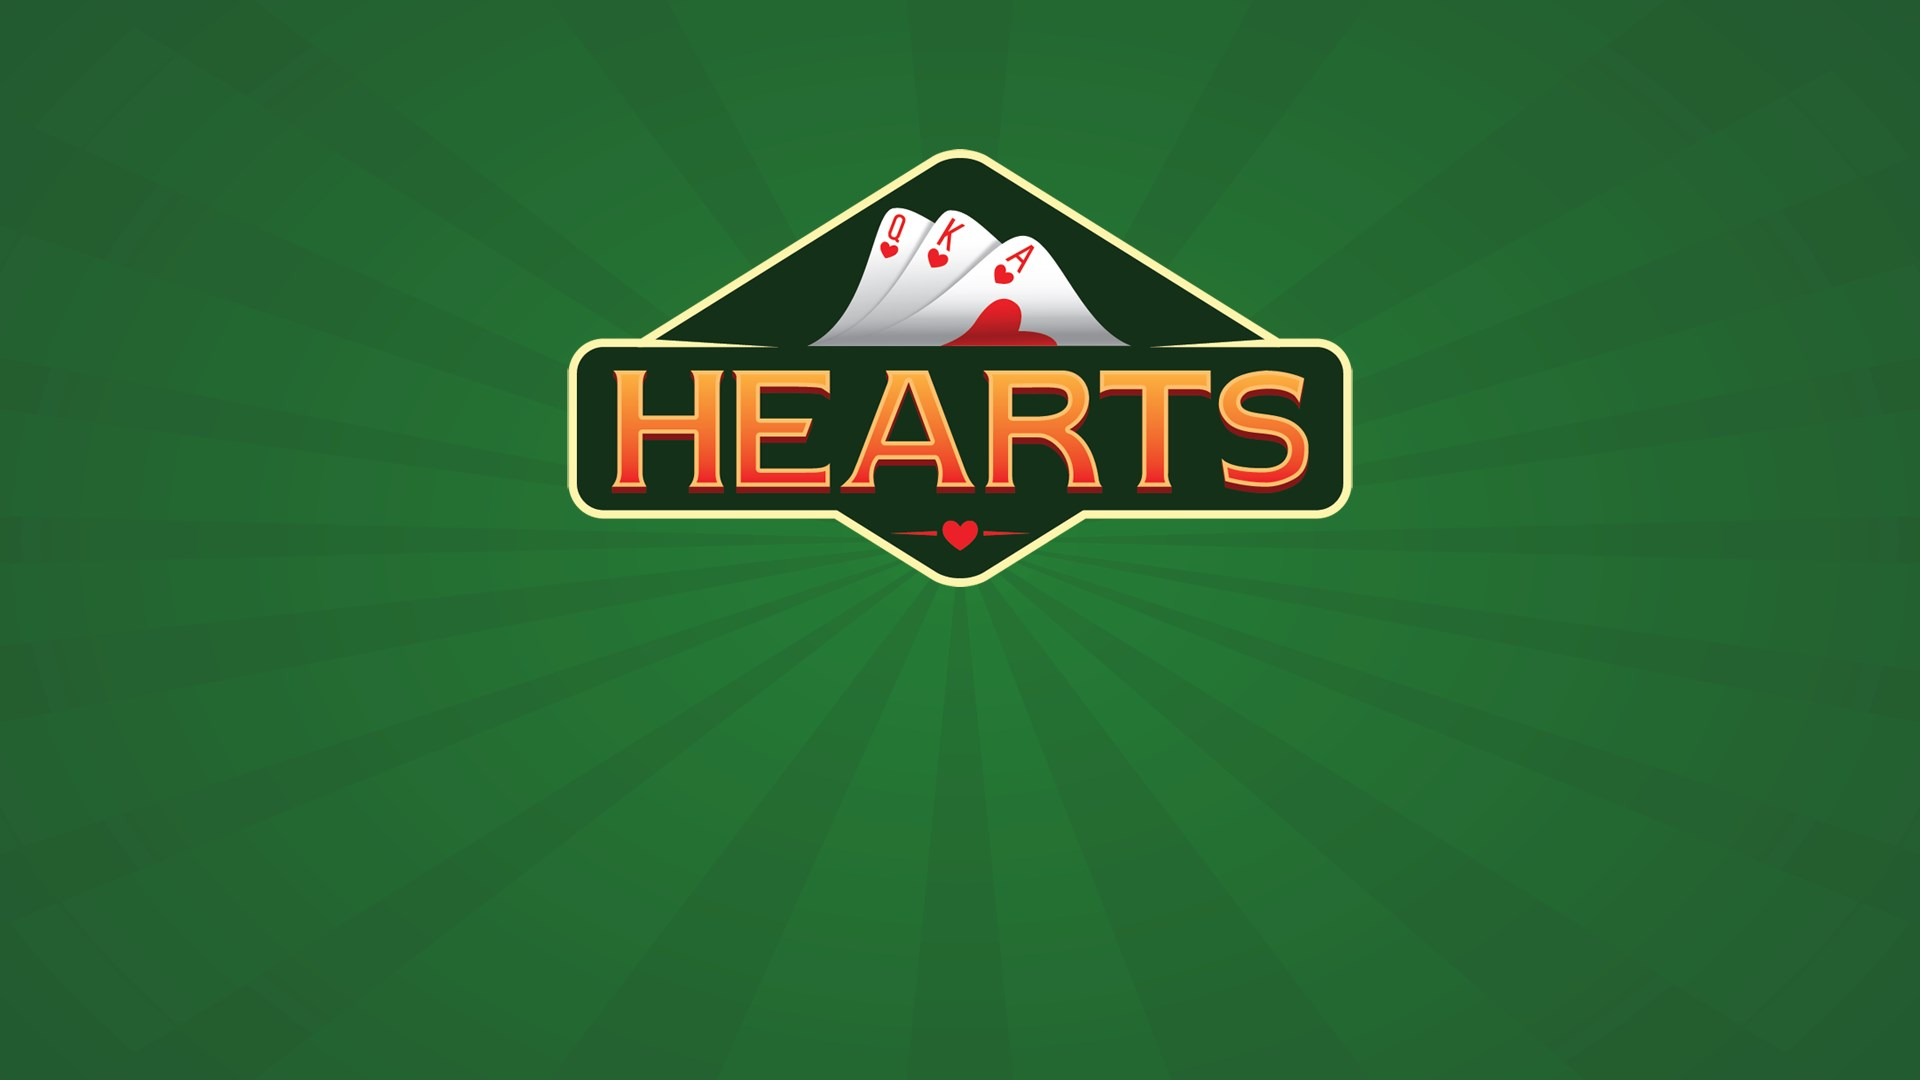 Get Hearts Free Microsoft Store